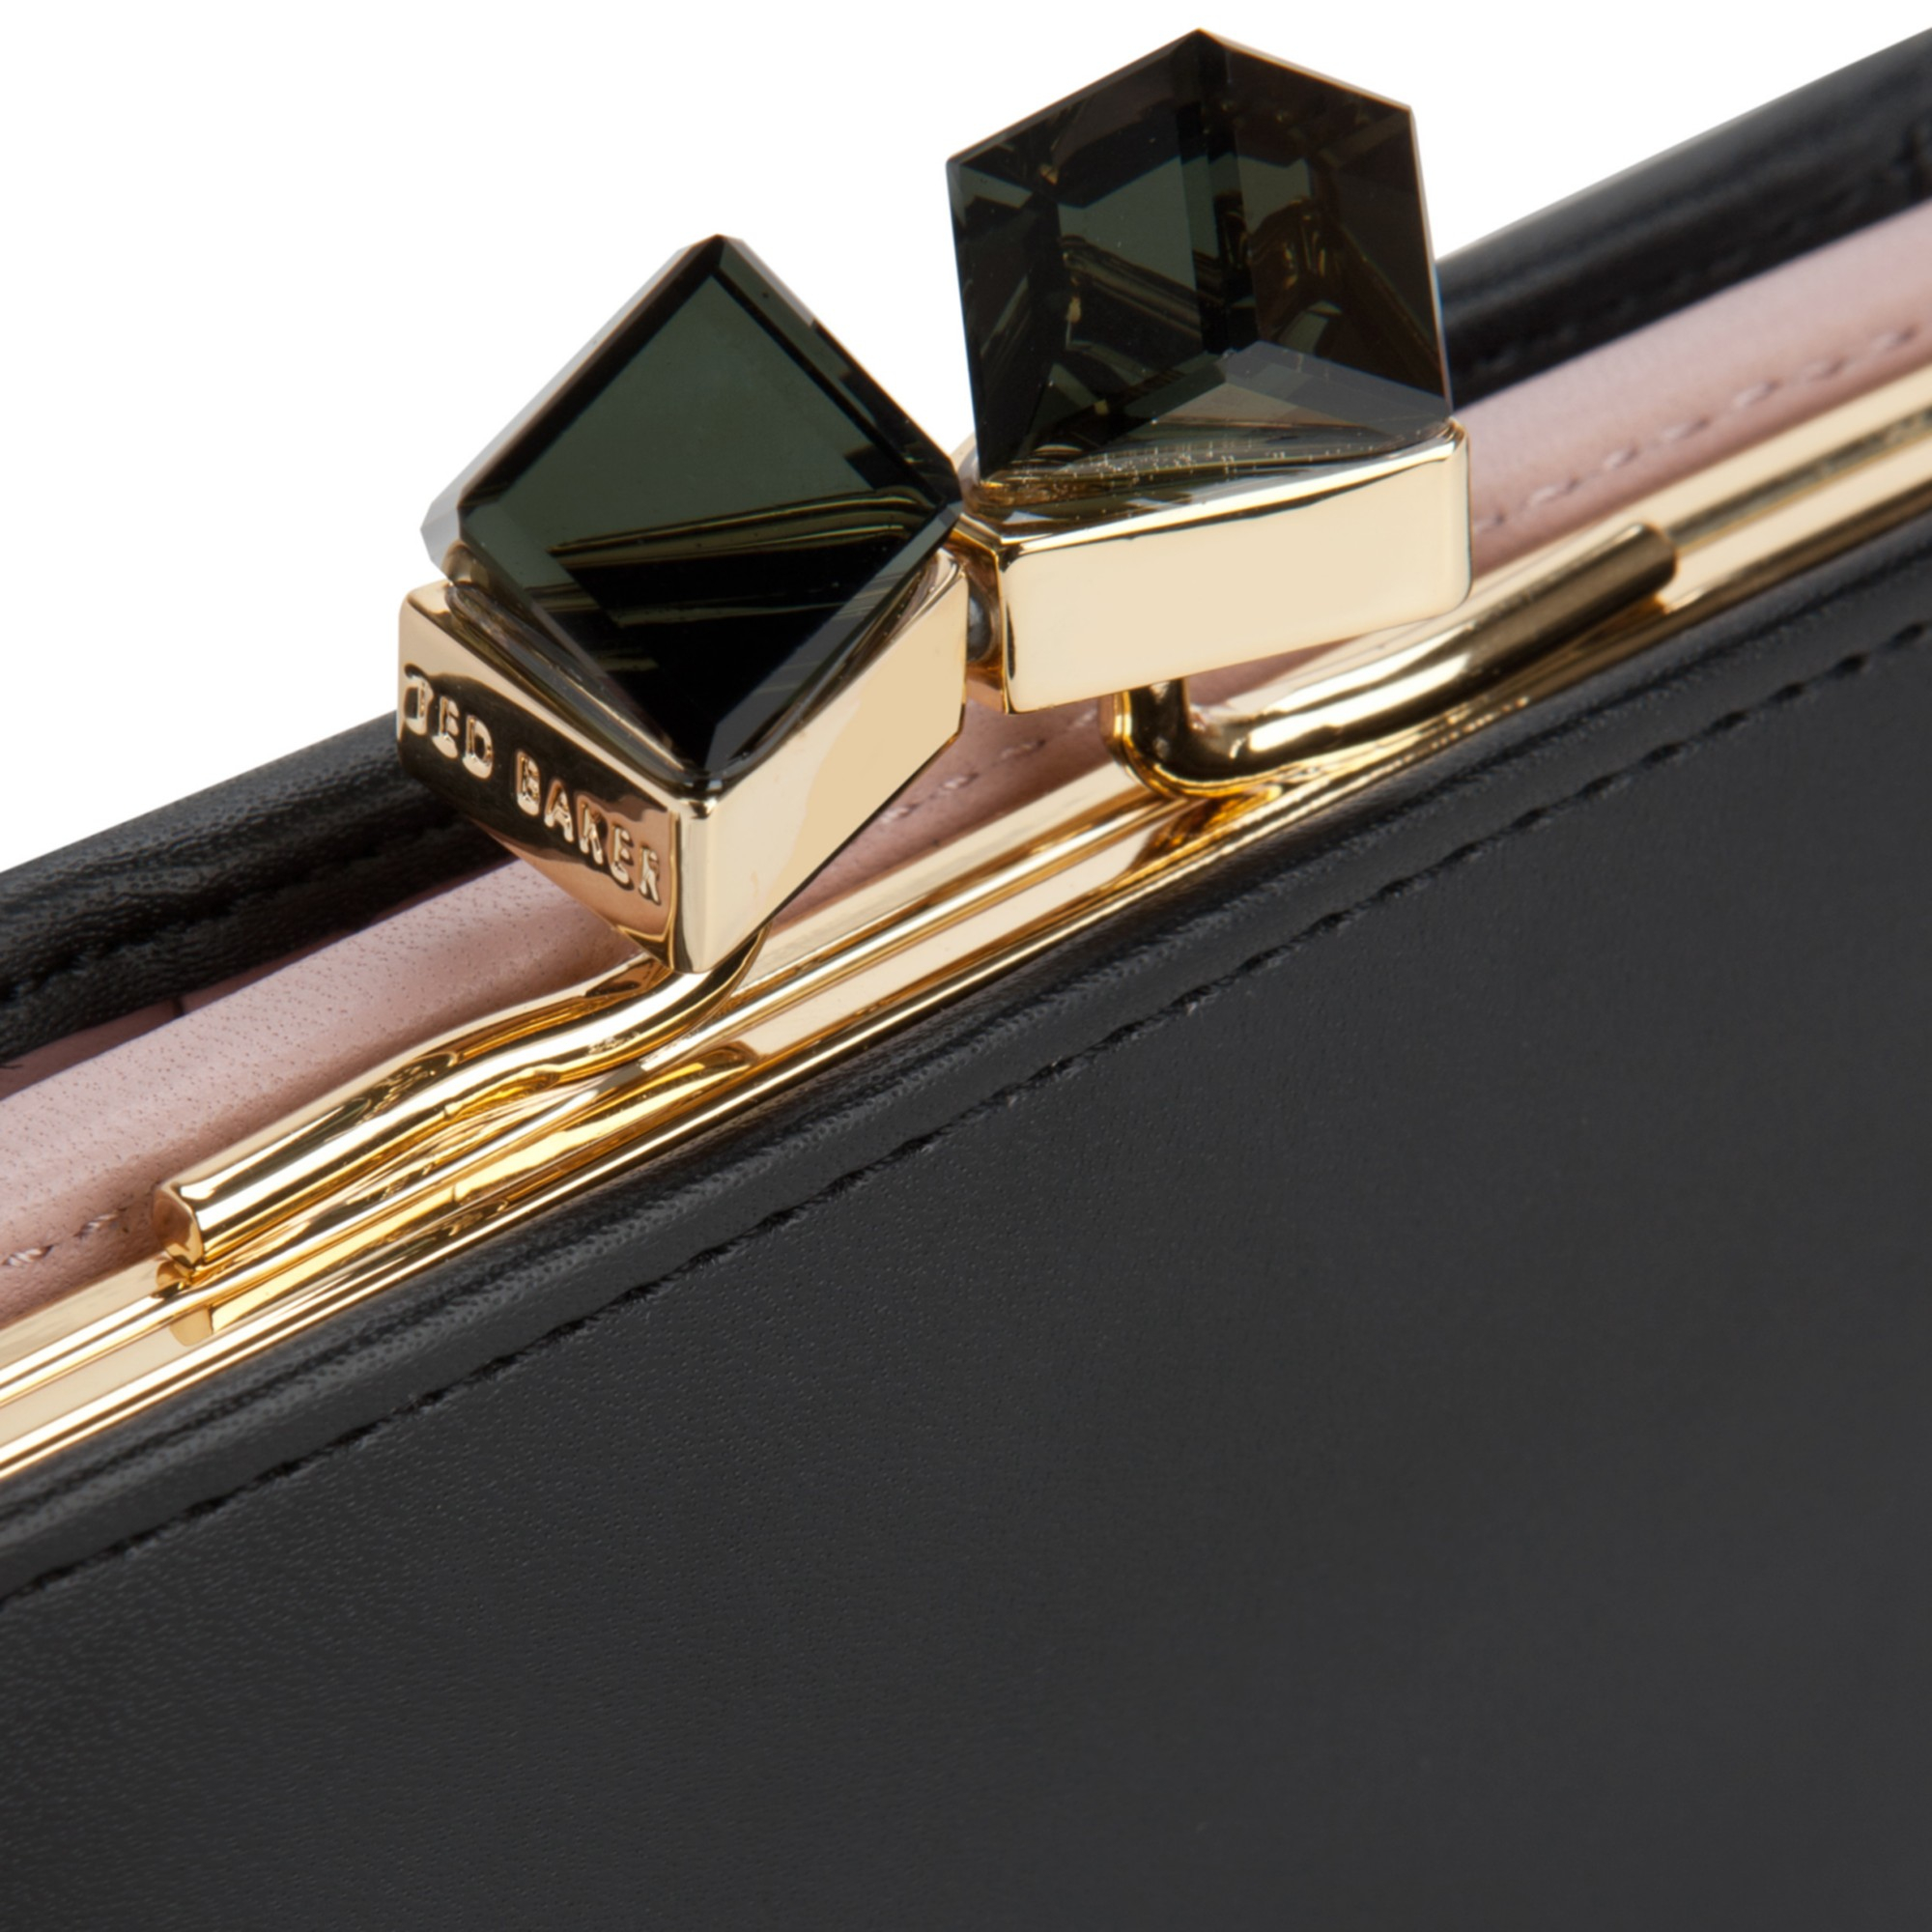 49847af295 Ted Baker Elly Small Square Crystal Leather Purse in Black - Lyst